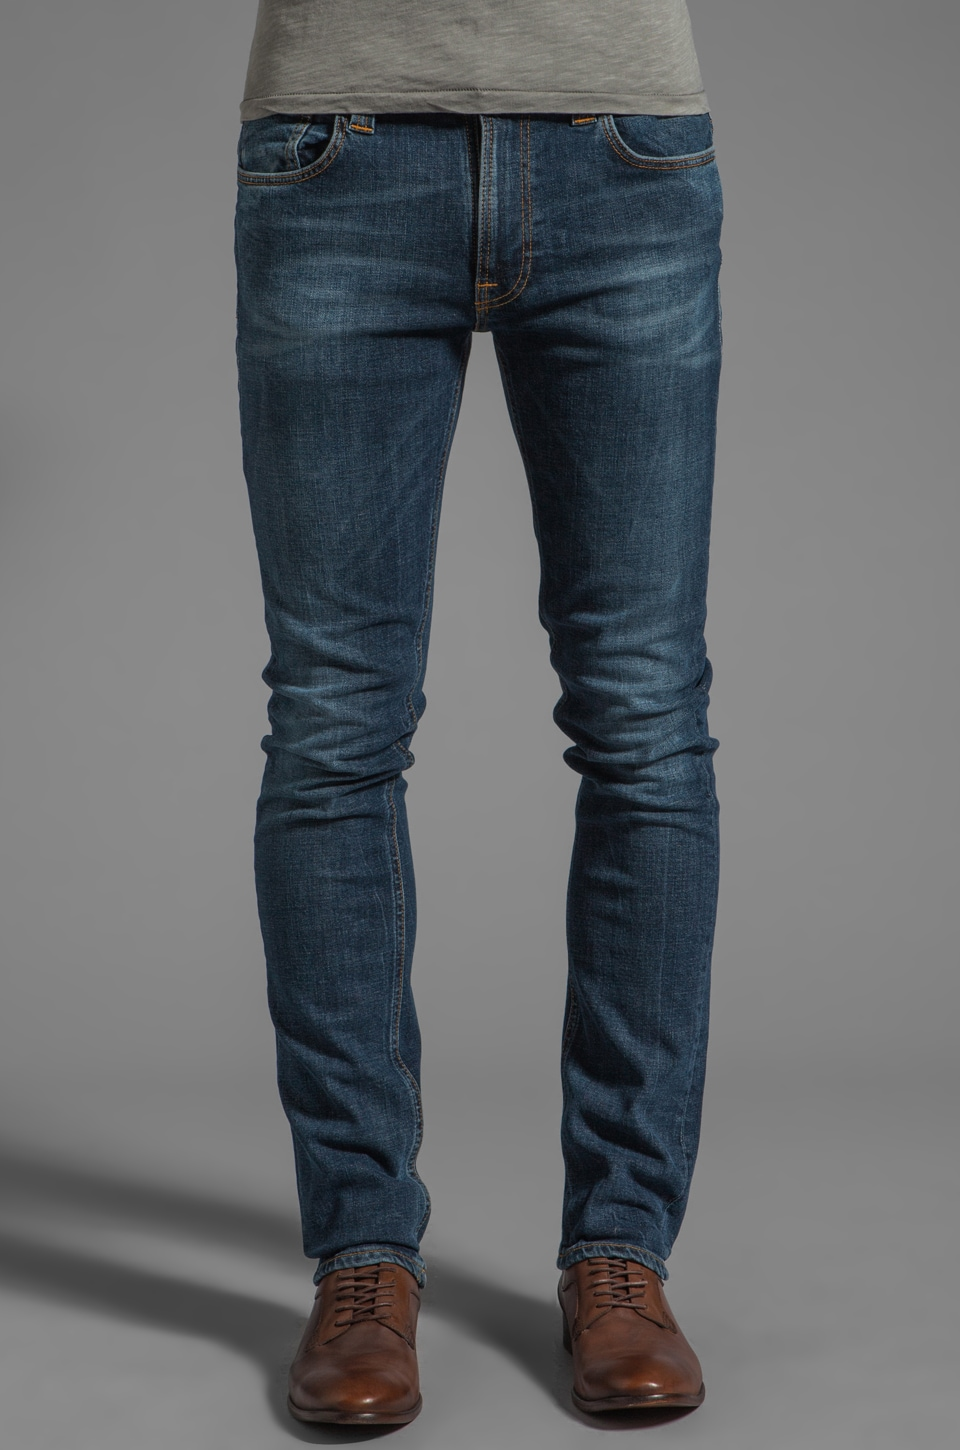 Nudie Jeans Tape Ted in Organic Authentic Snake